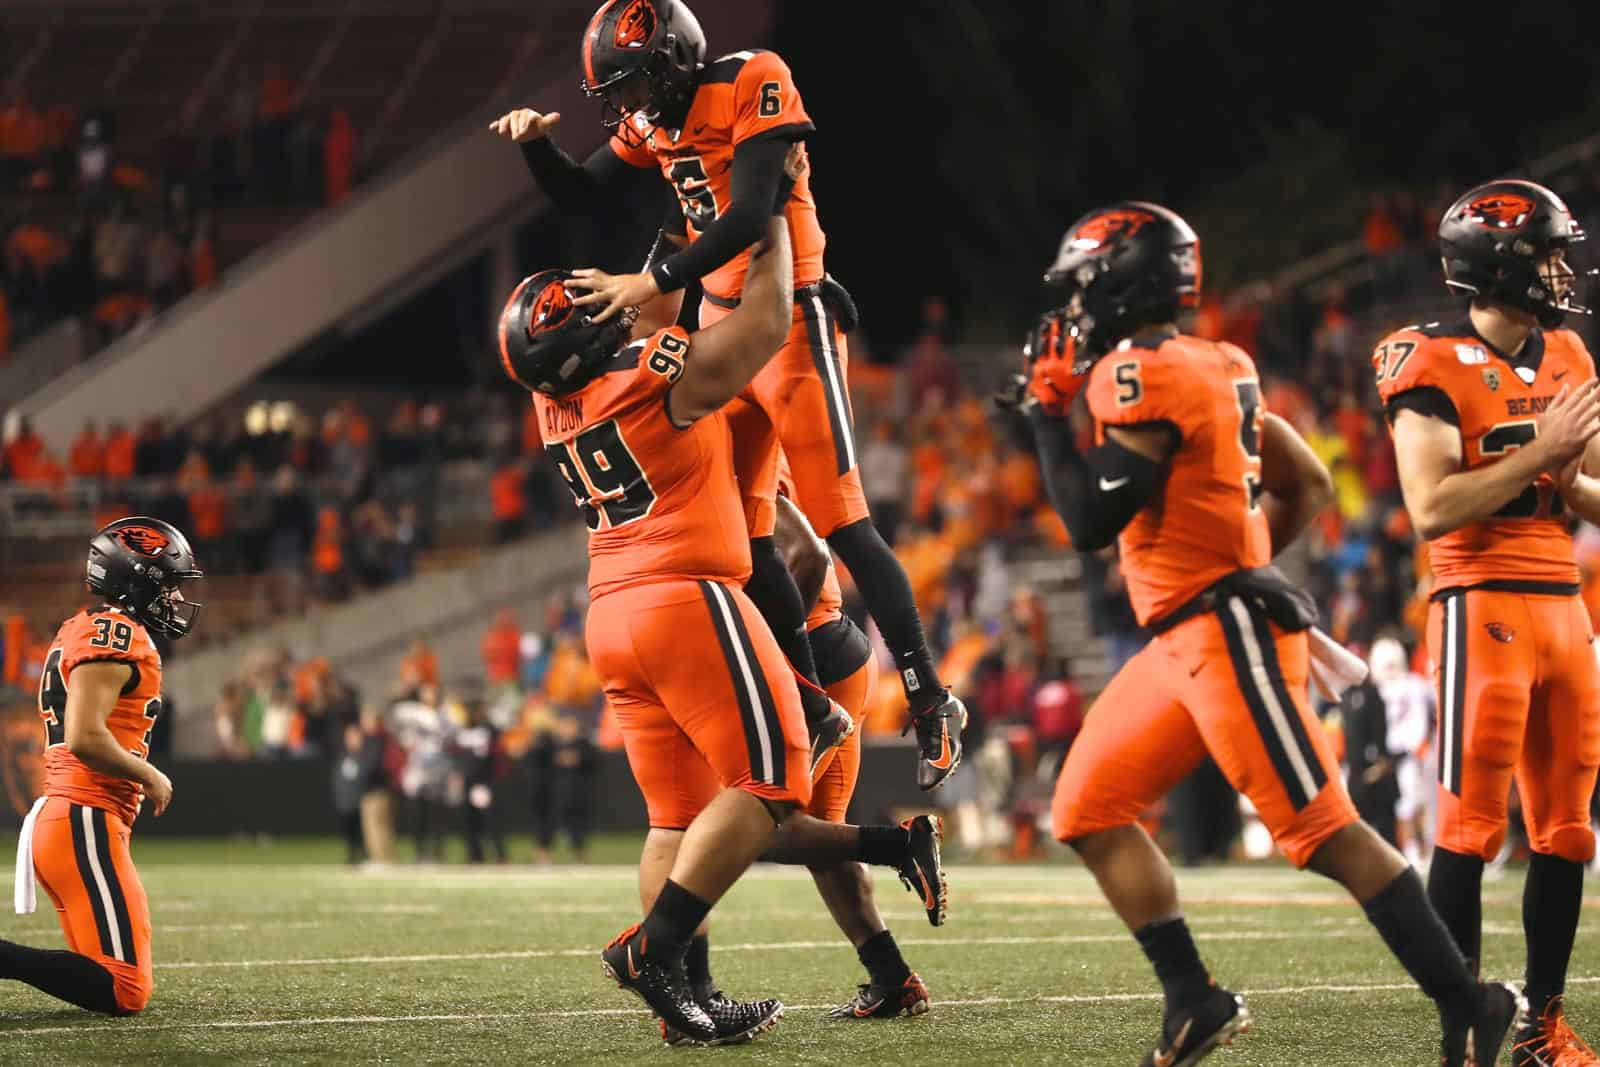 2020 Oregon State Beavers football schedule